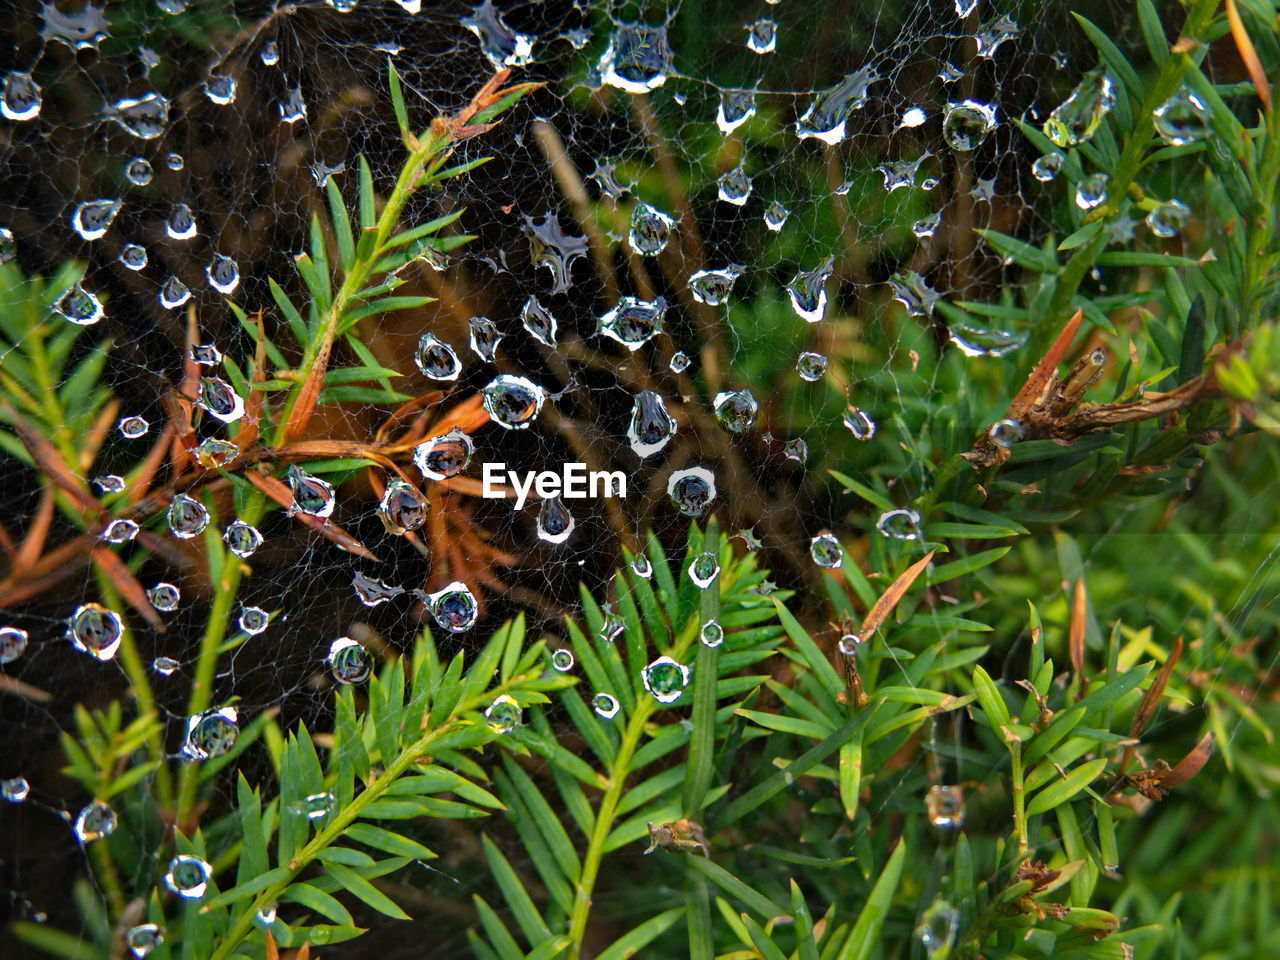 water, plant, leaf, growth, drop, wet, green color, plant part, beauty in nature, nature, close-up, day, no people, animal wildlife, selective focus, animals in the wild, animal themes, animal, rain, raindrop, outdoors, rainy season, dew, purity, leaves